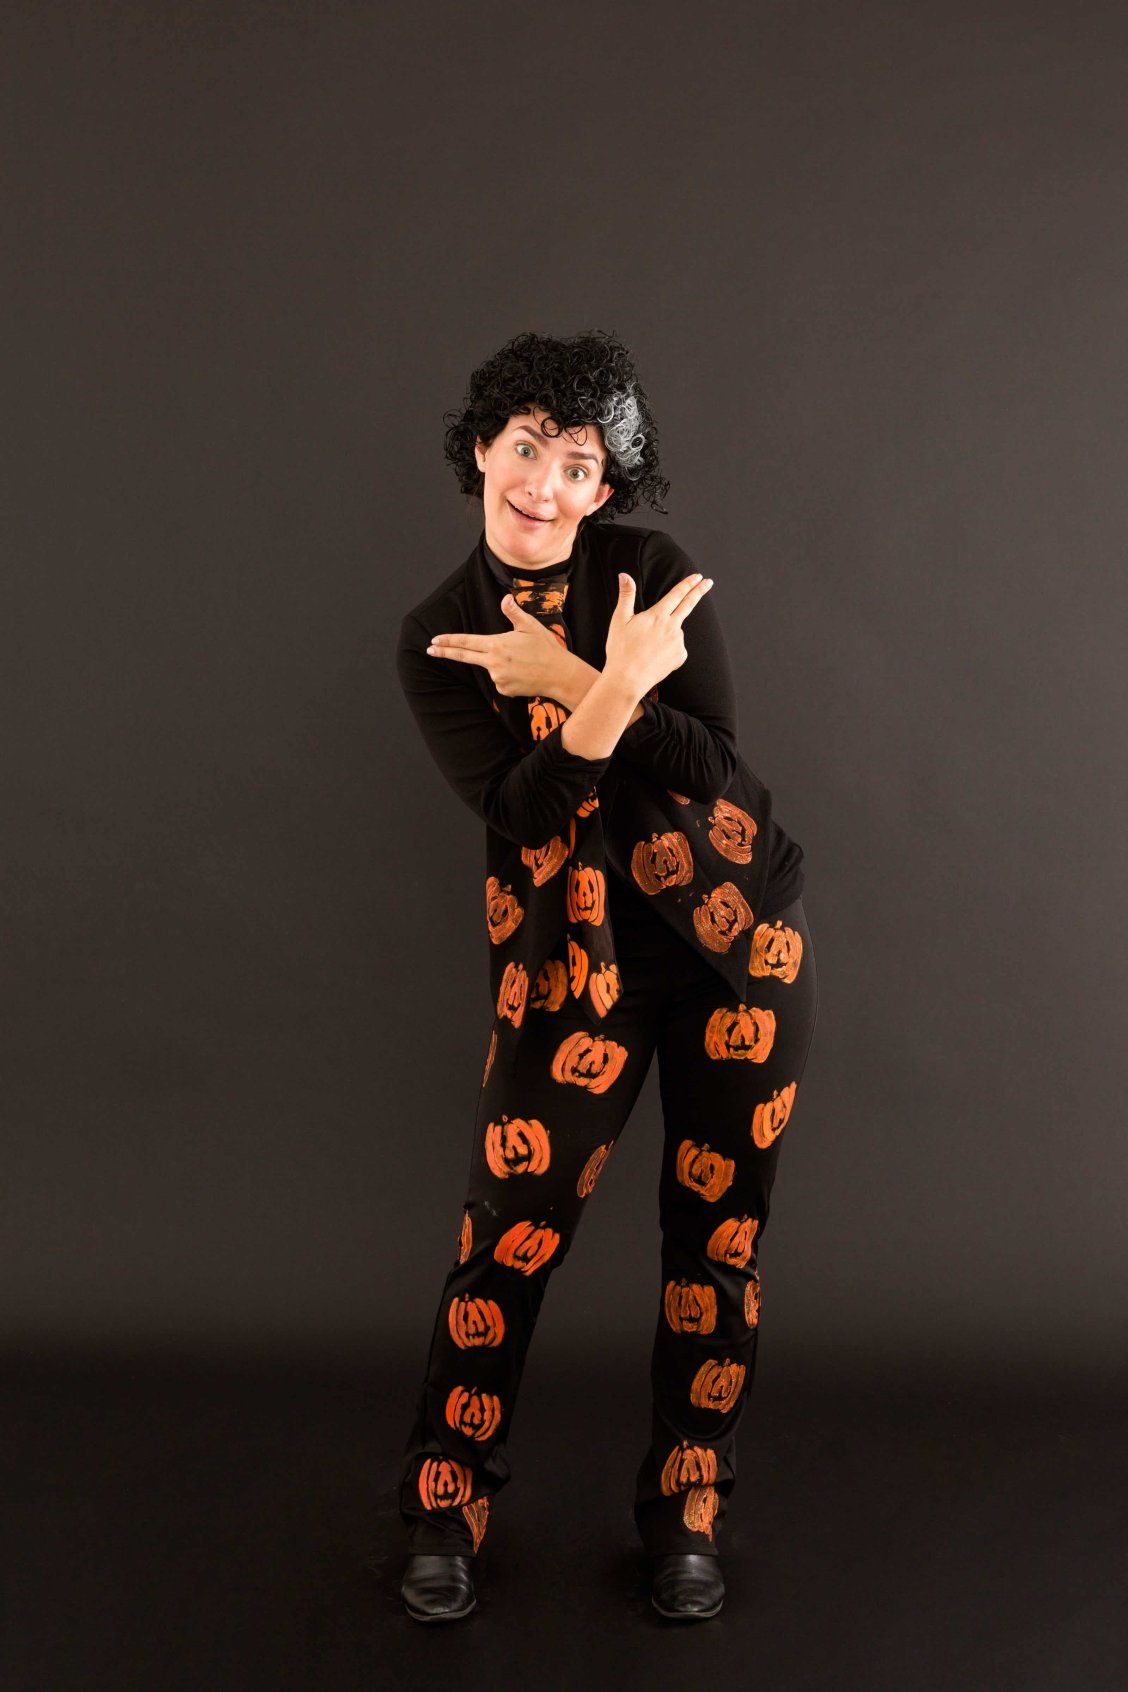 Get Your Funky DIY on With This David S. Pumpkins Group